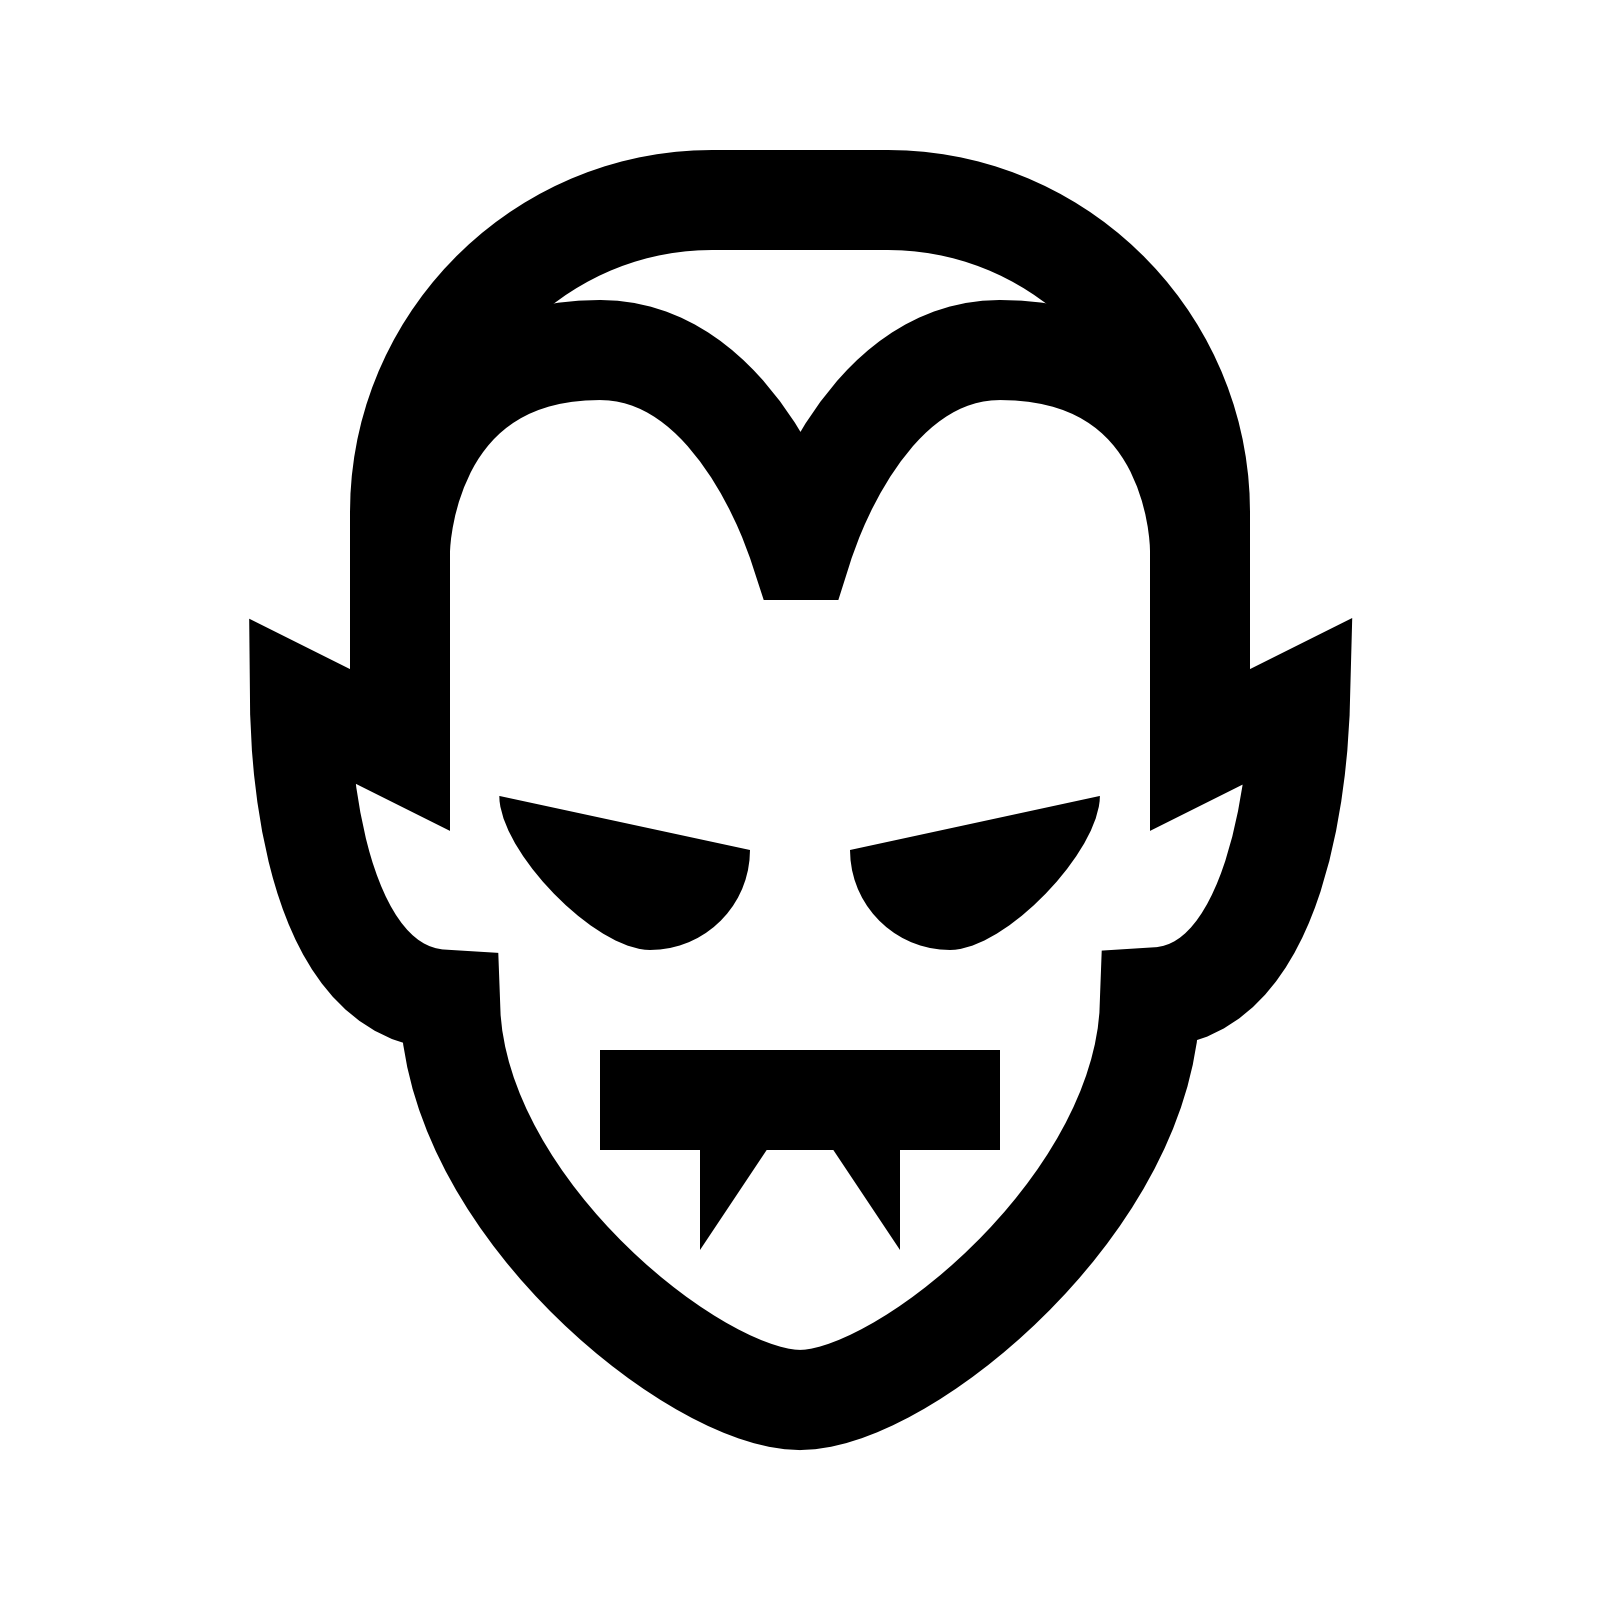 Vampire svg #727, Download drawings